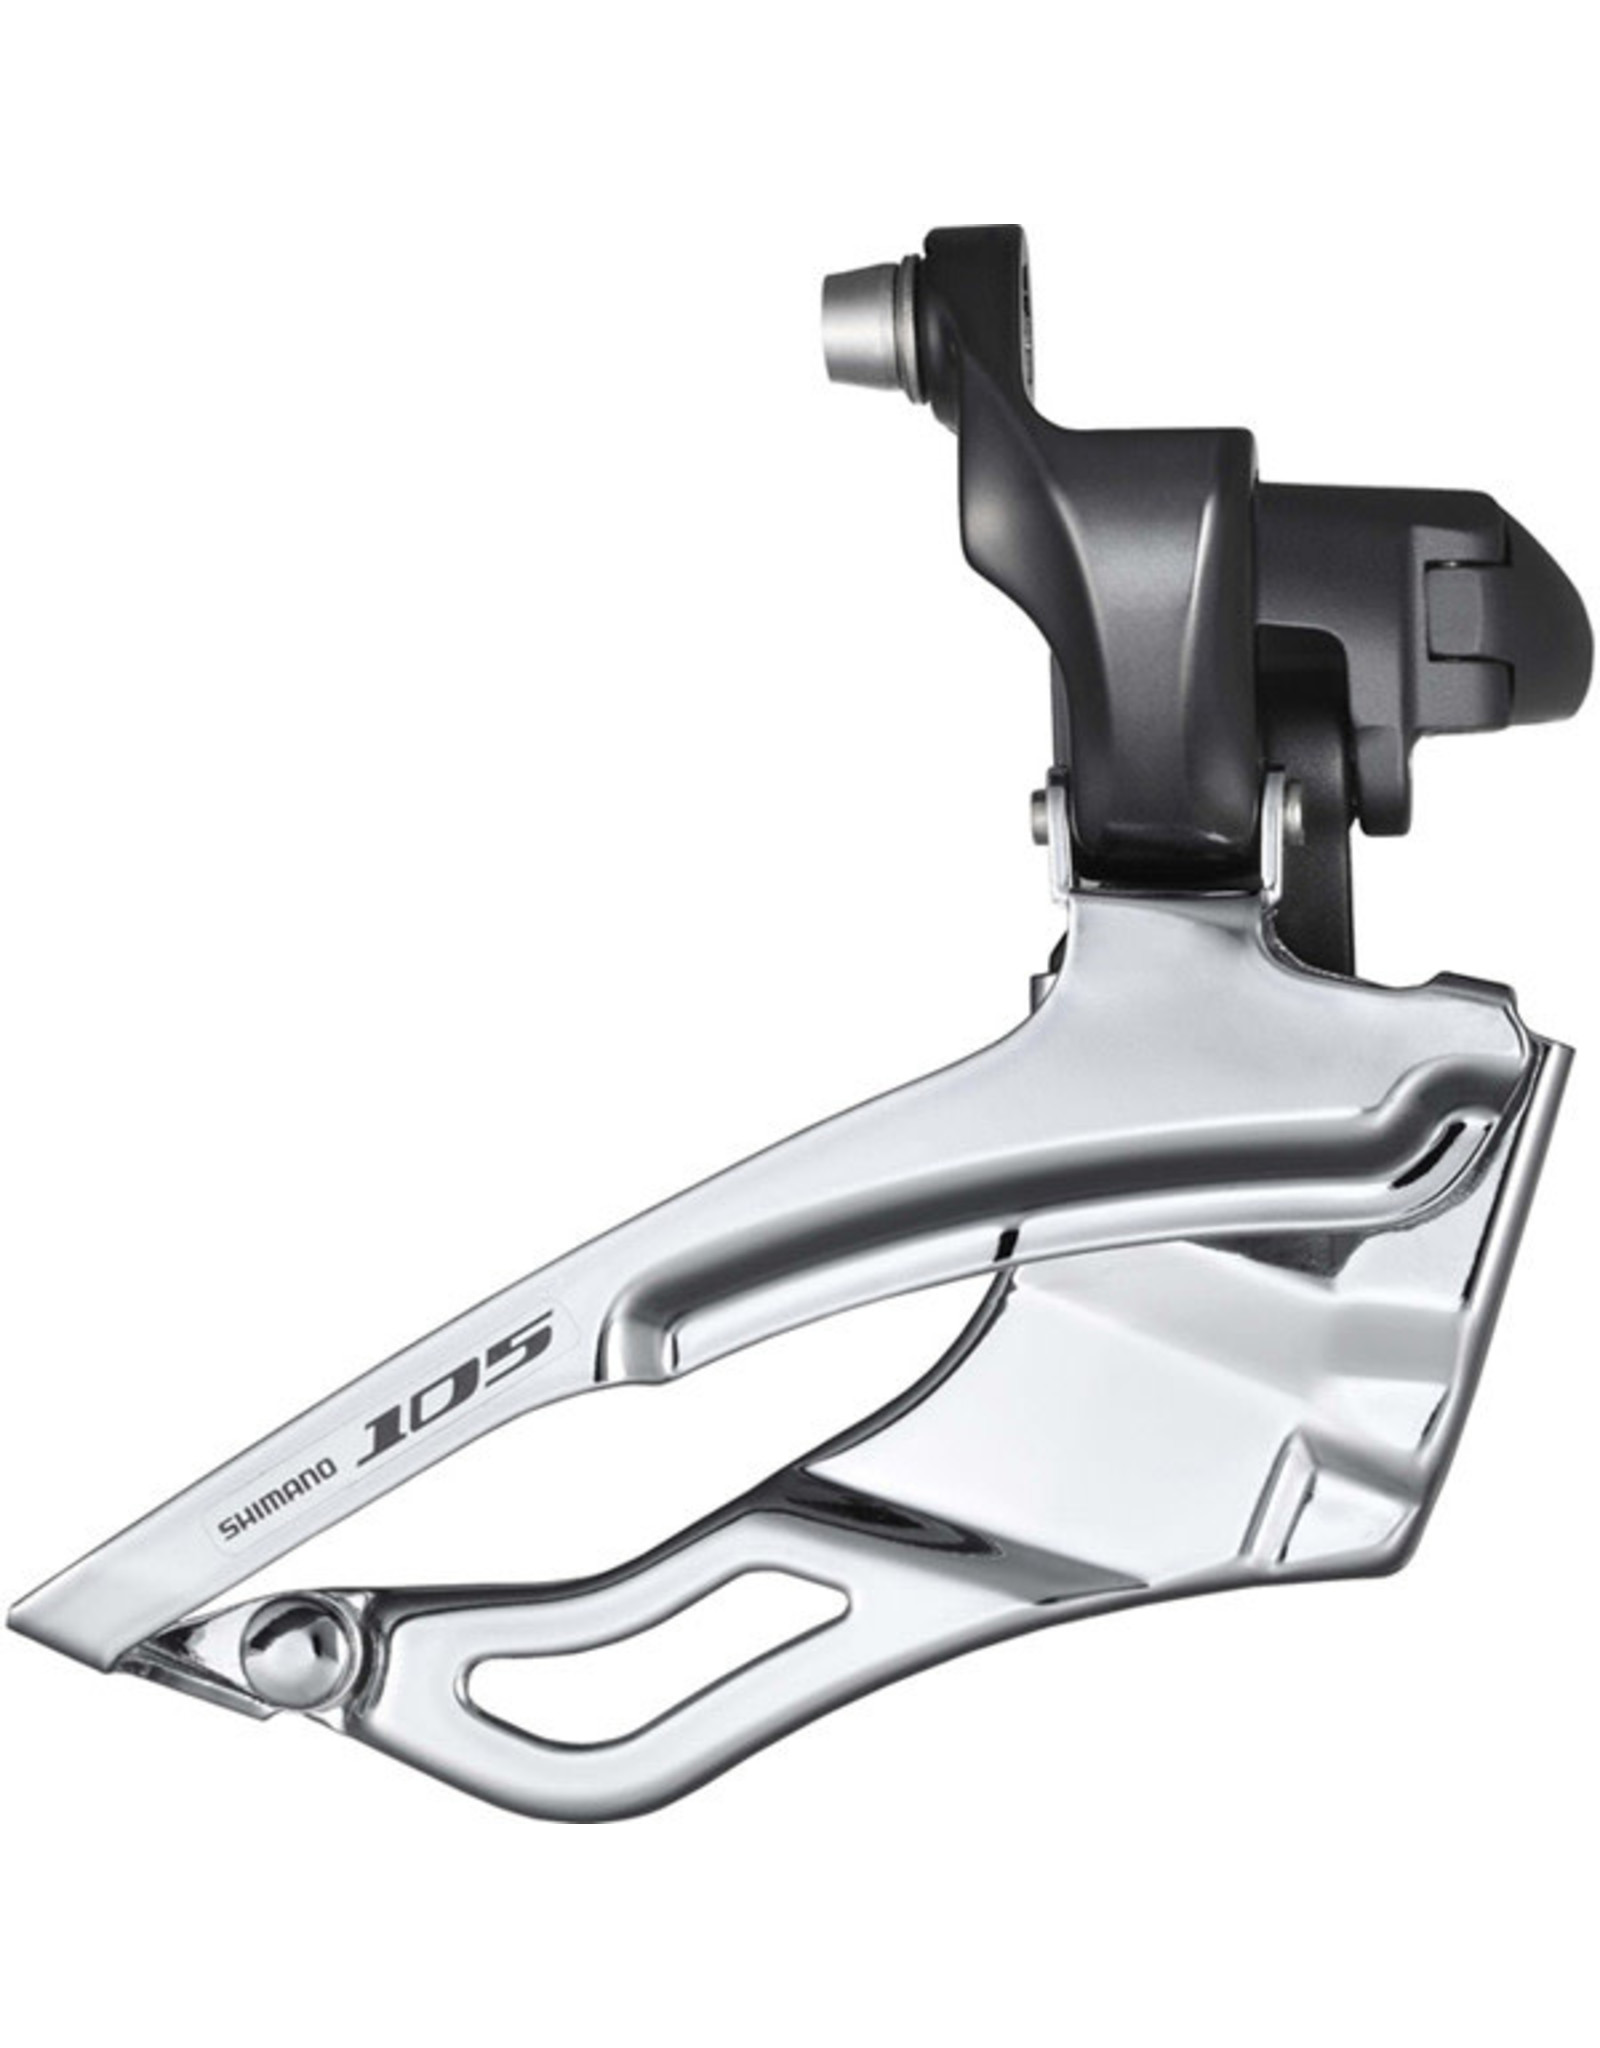 Shimano Front Derailleur Triple 105 10 Speed Braze-On Black